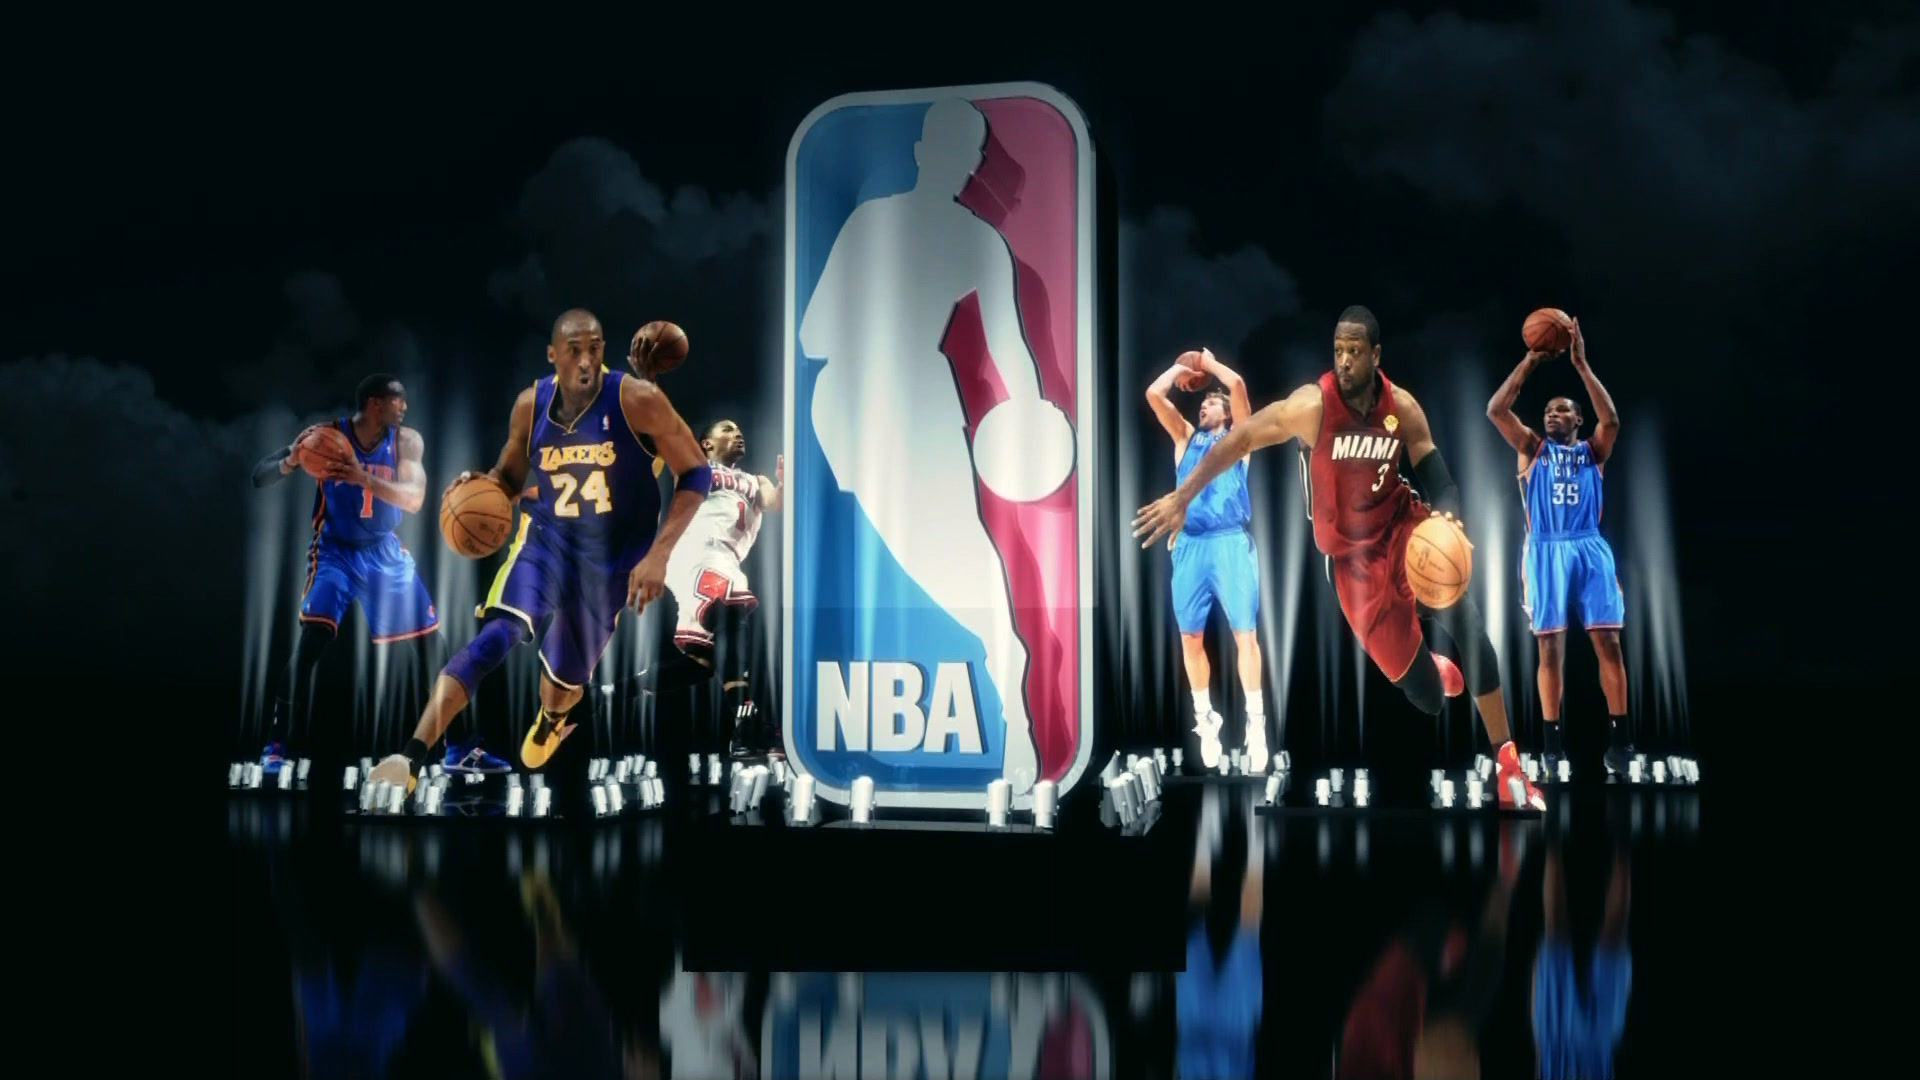 NBA Wallpaper HD